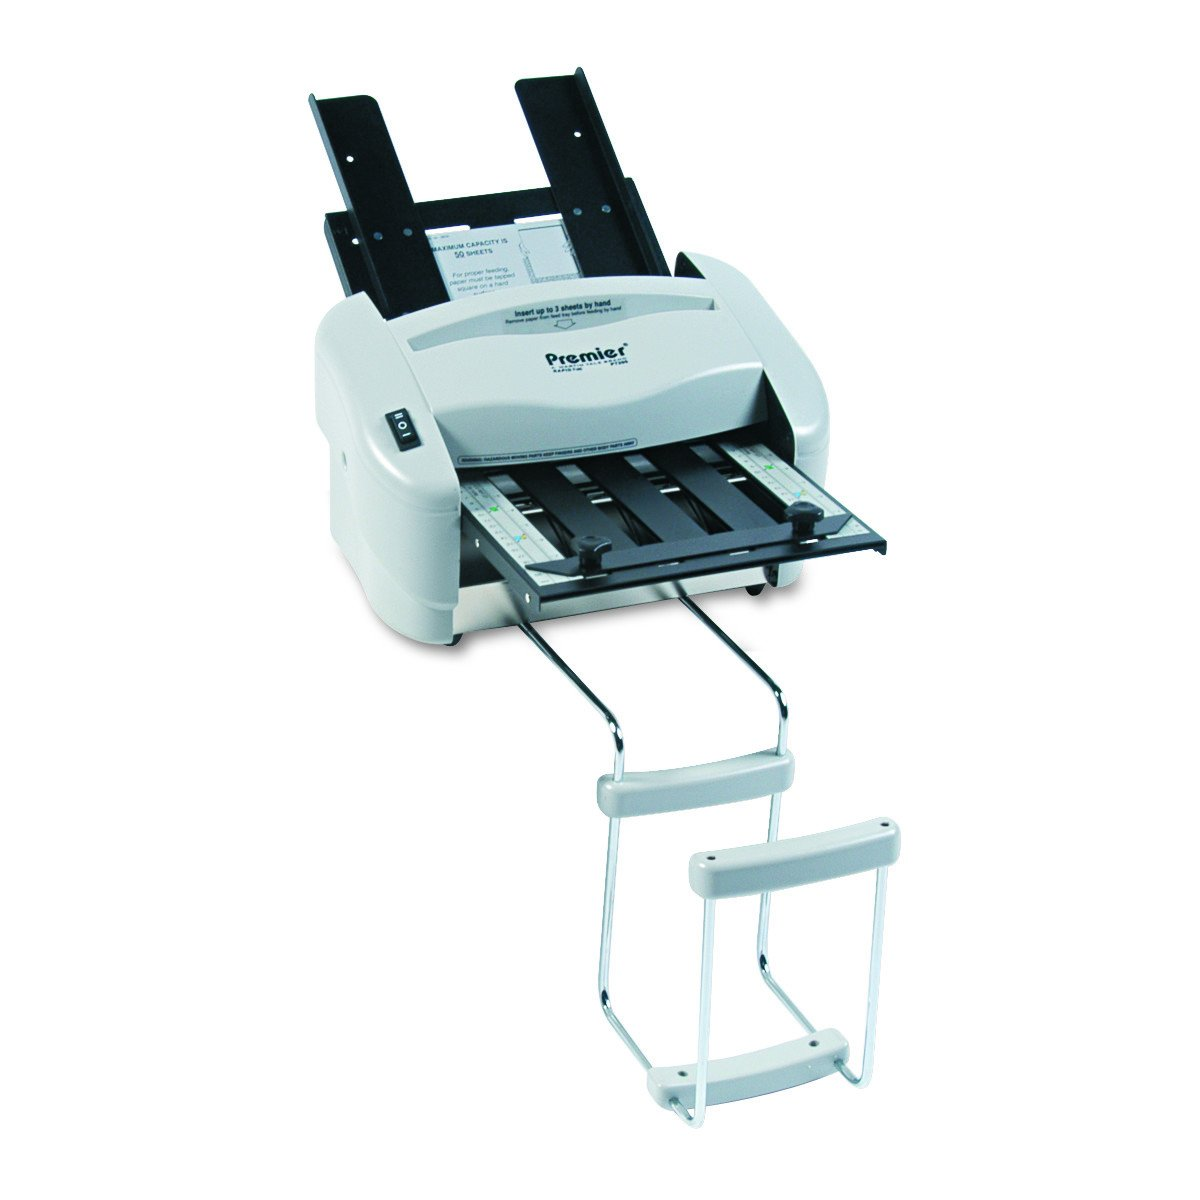 Amazon.: Martin Yale P7200 Premier Rapid Fold Automatic